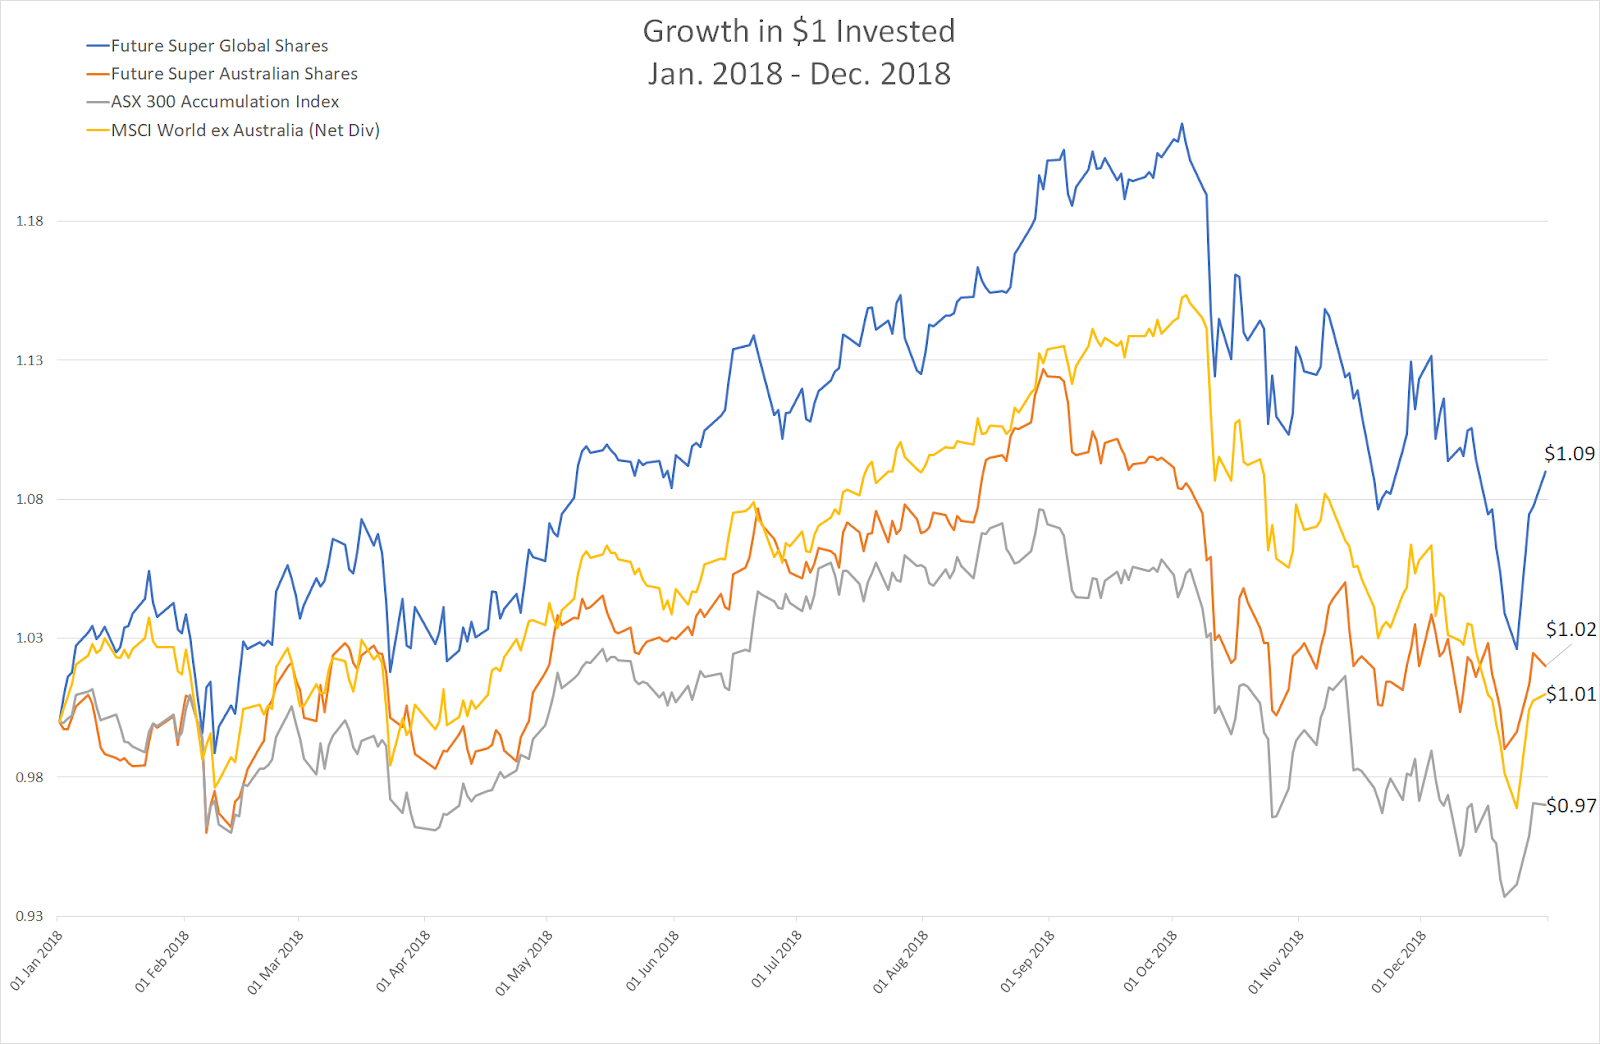 Growth in $1 invested - Future Super vs ASX 300